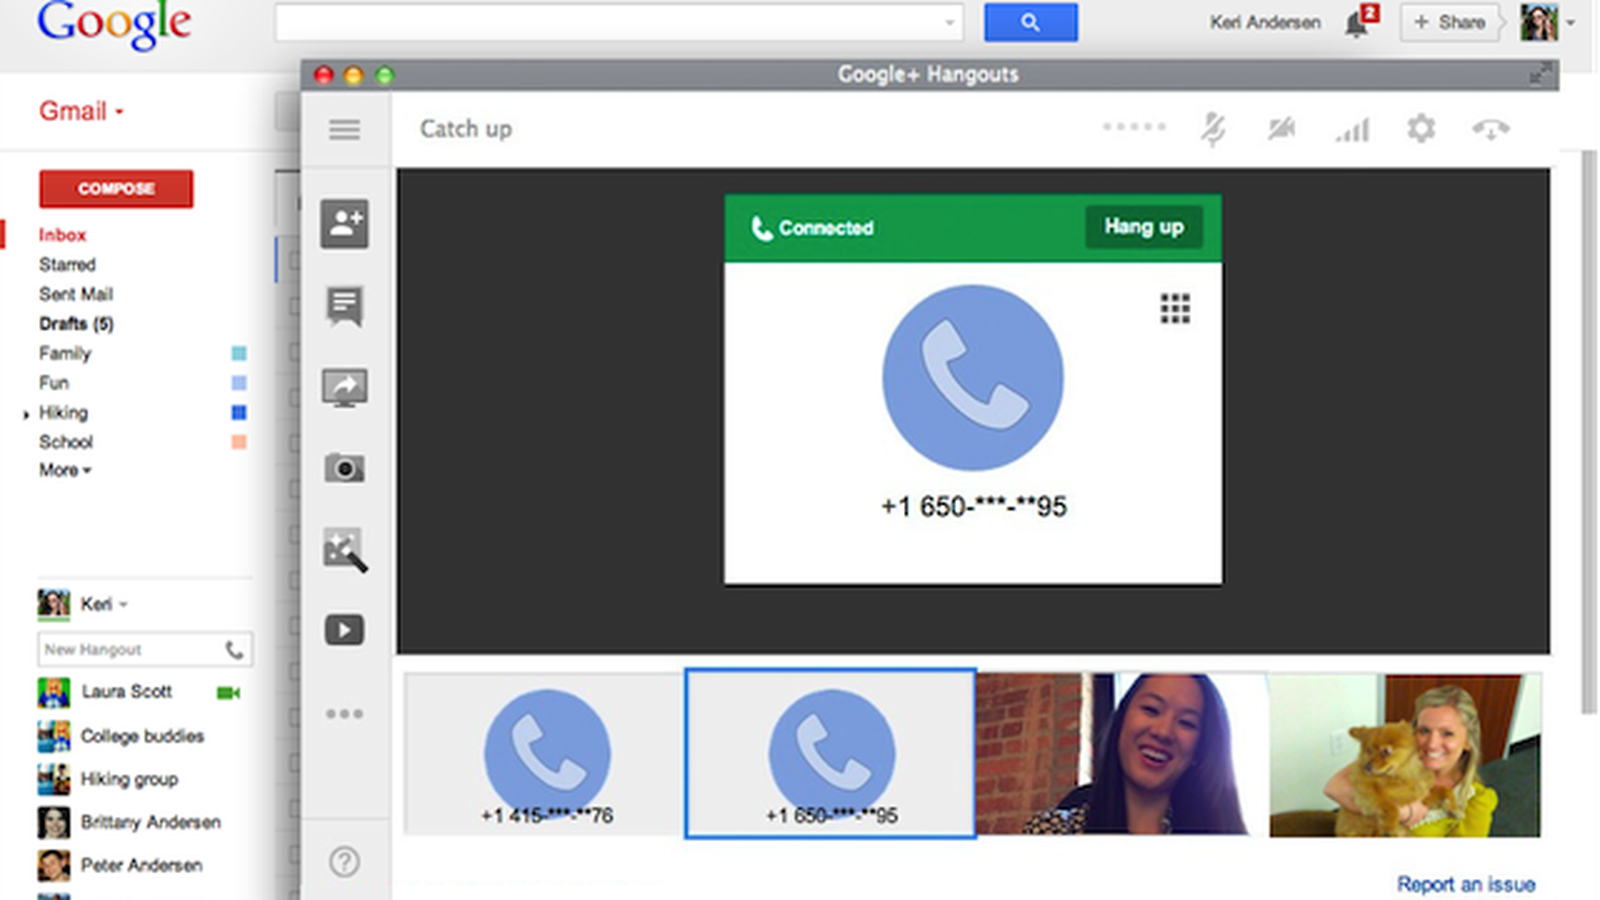 Google adds voice calling to Hangouts, promises 'the future